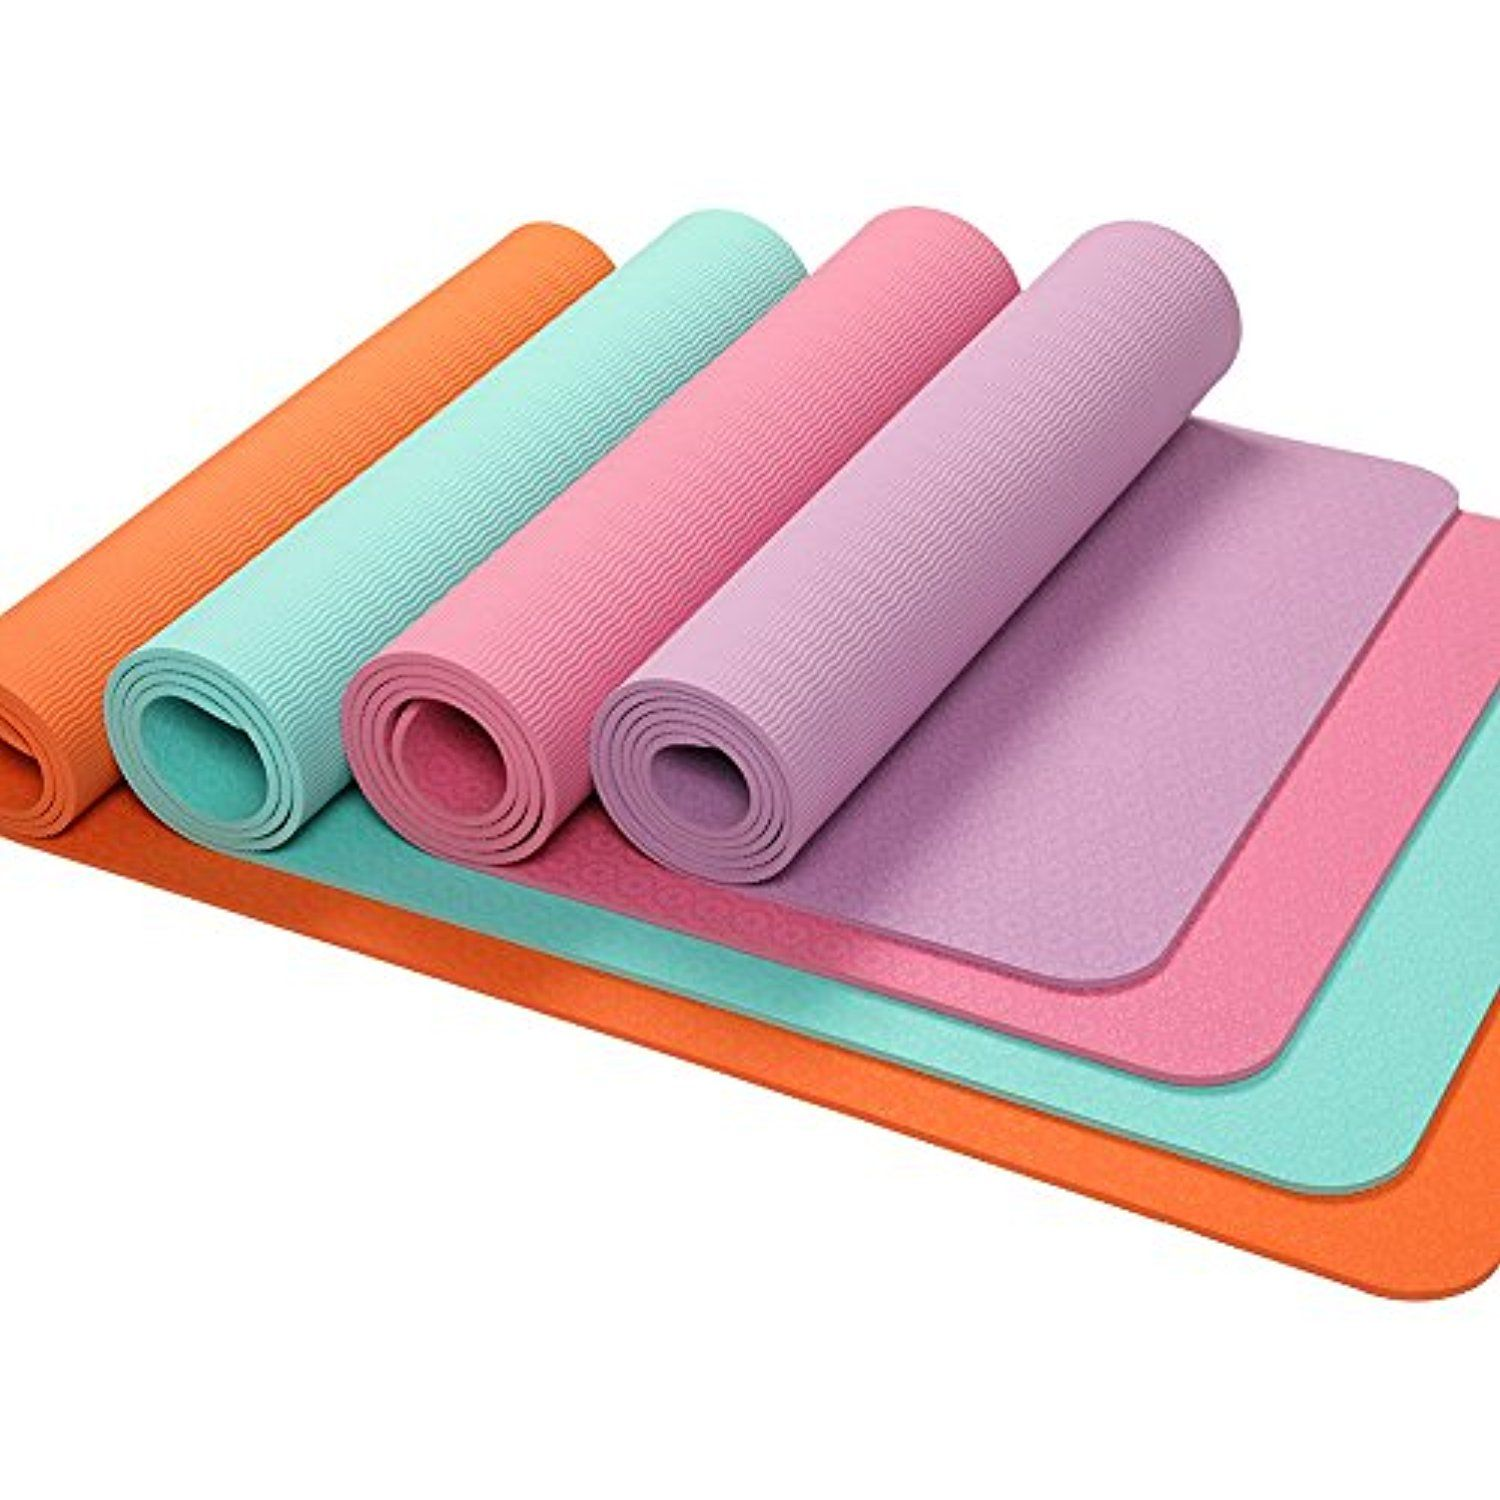 Oyoga Non Slip Yoga Mat Tpe Thick 1 4 Inch Grip Pilates Exercise Mats 72 Inch With Travel Bag See This Great Pr Mat Pilates Workout Pilates Workout Yoga Mat